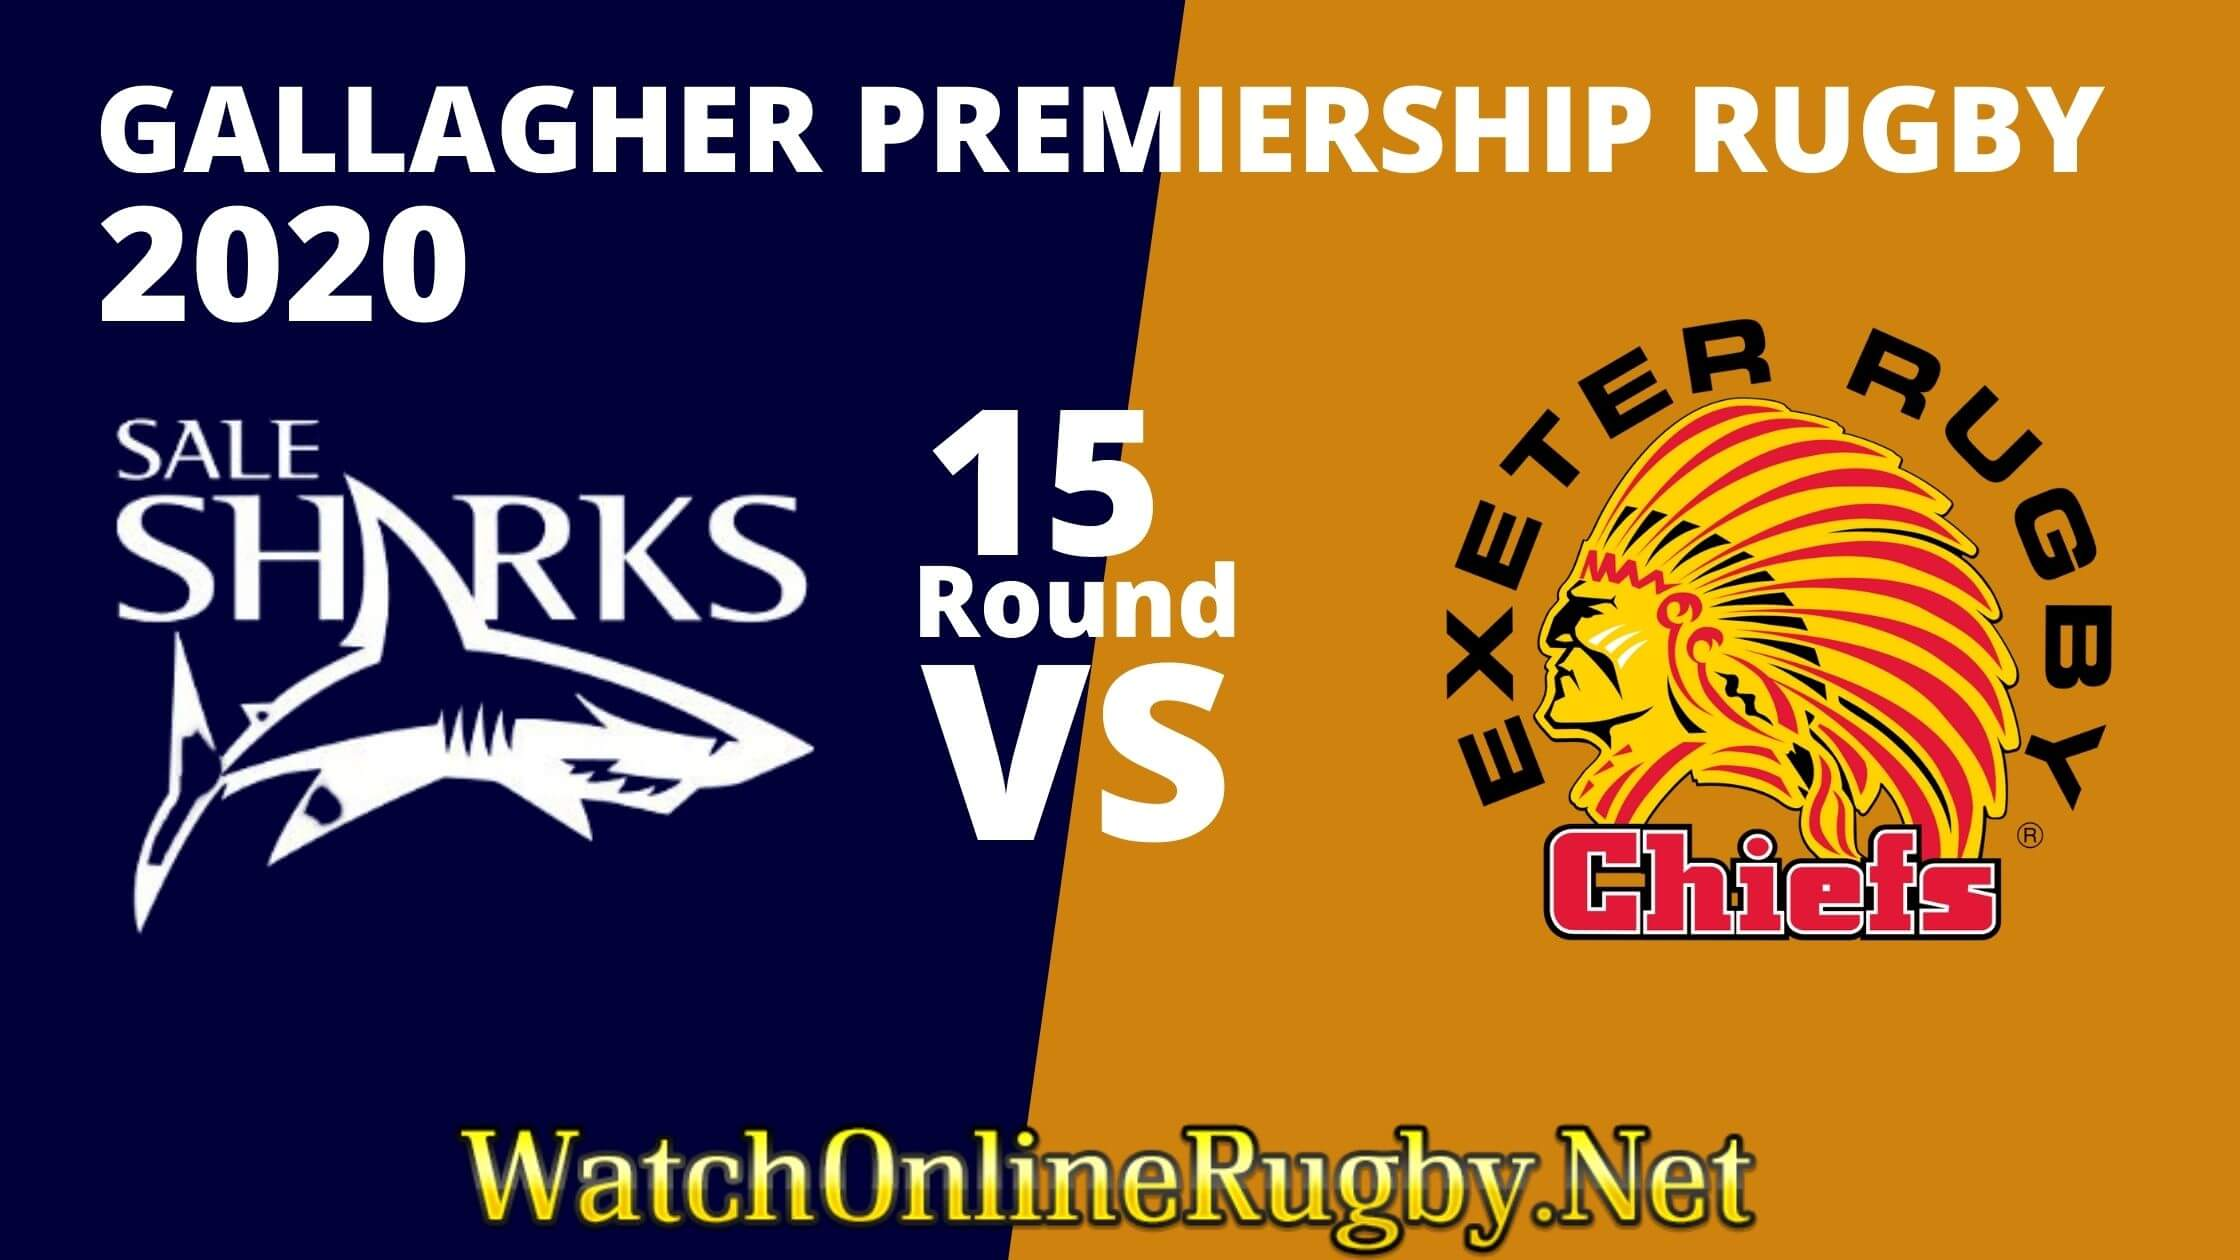 Live Sale Sharks Vs Exeter Chiefs Stream